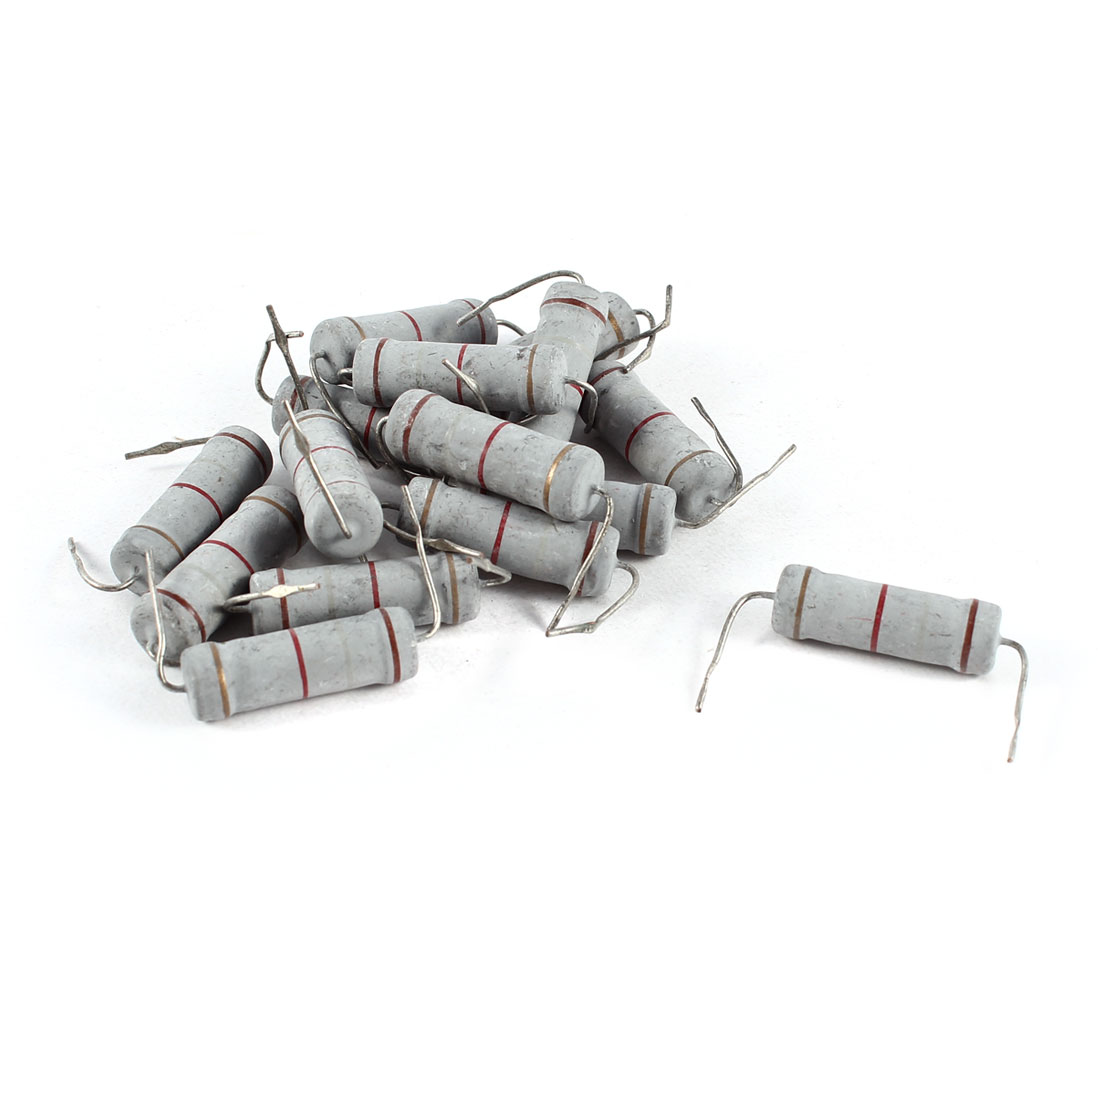 15 Pcs Axial Lead 1.8K Ohm 5W 5% Tolerence Metal Oxide Film Resistor Resistance